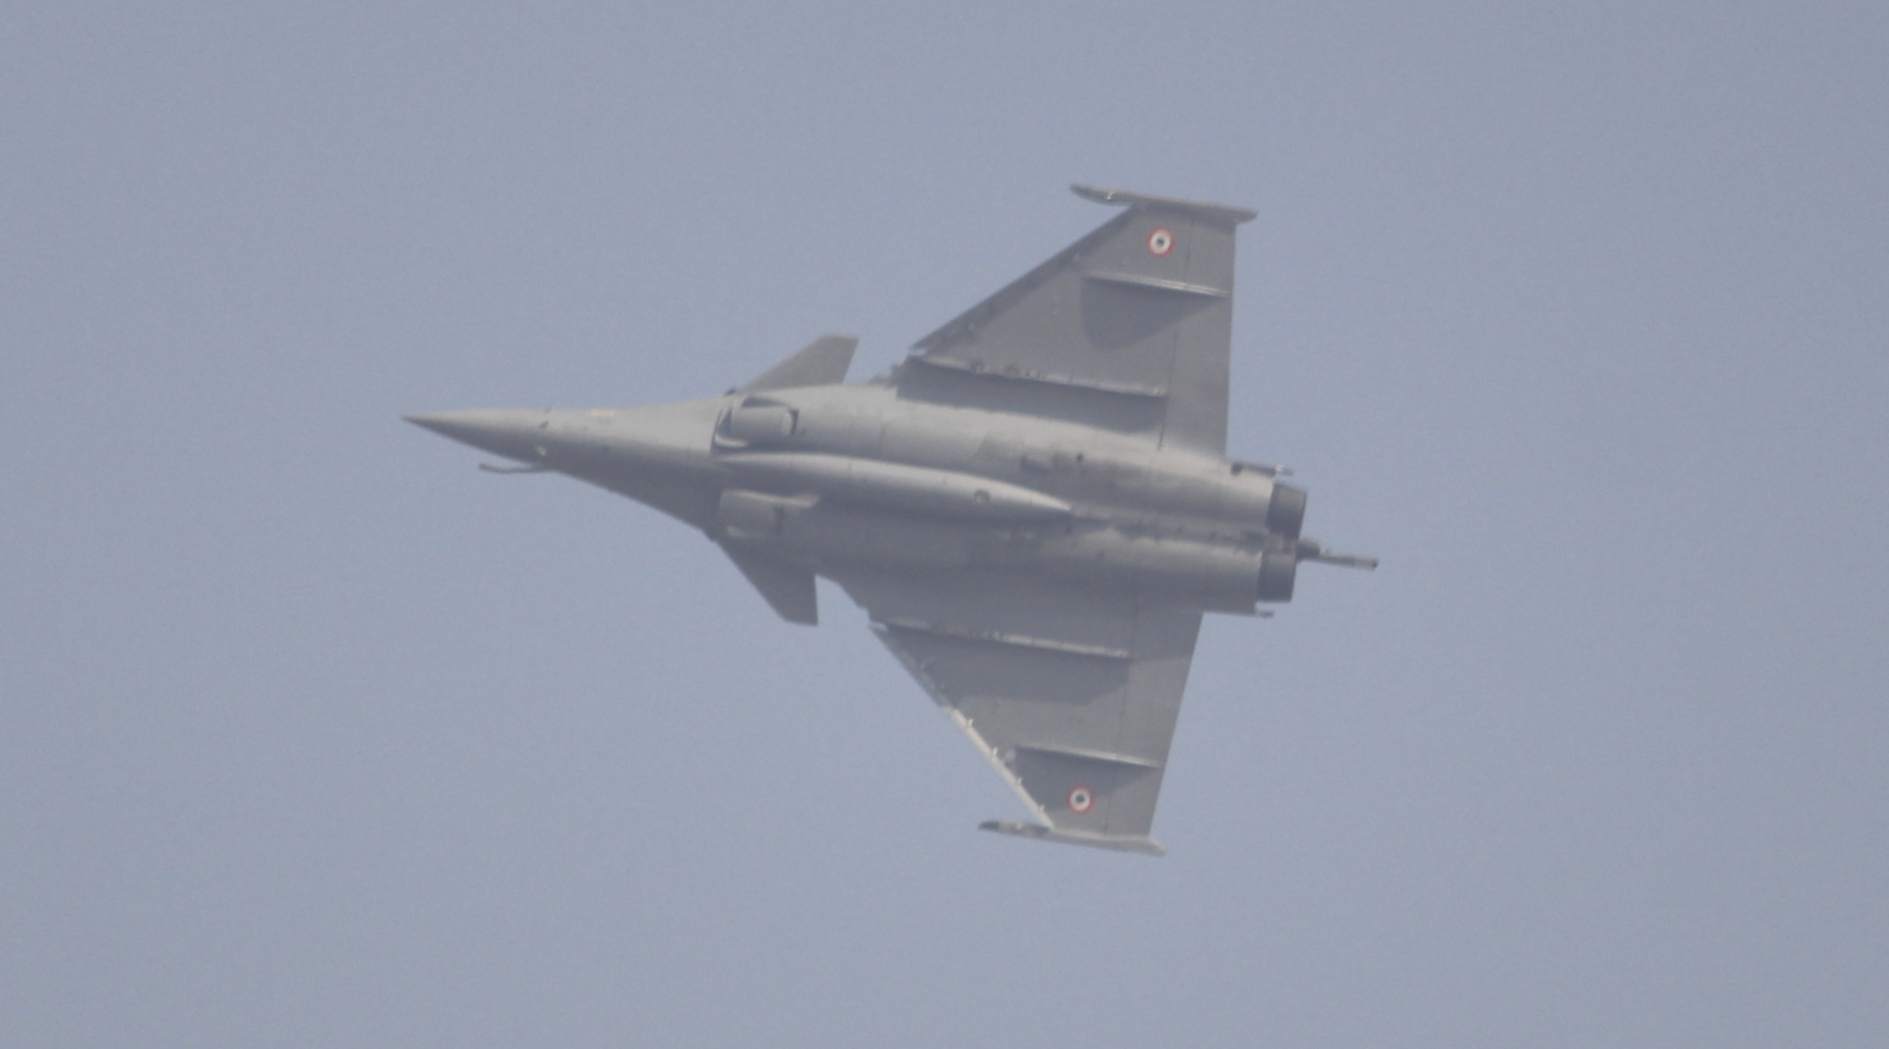 The recently inducted Rafale fighter jet flies past the Hindon Air Force Station during the 88th Air Force Day celebrations in Ghaziabad, Uttar Pradesh in October